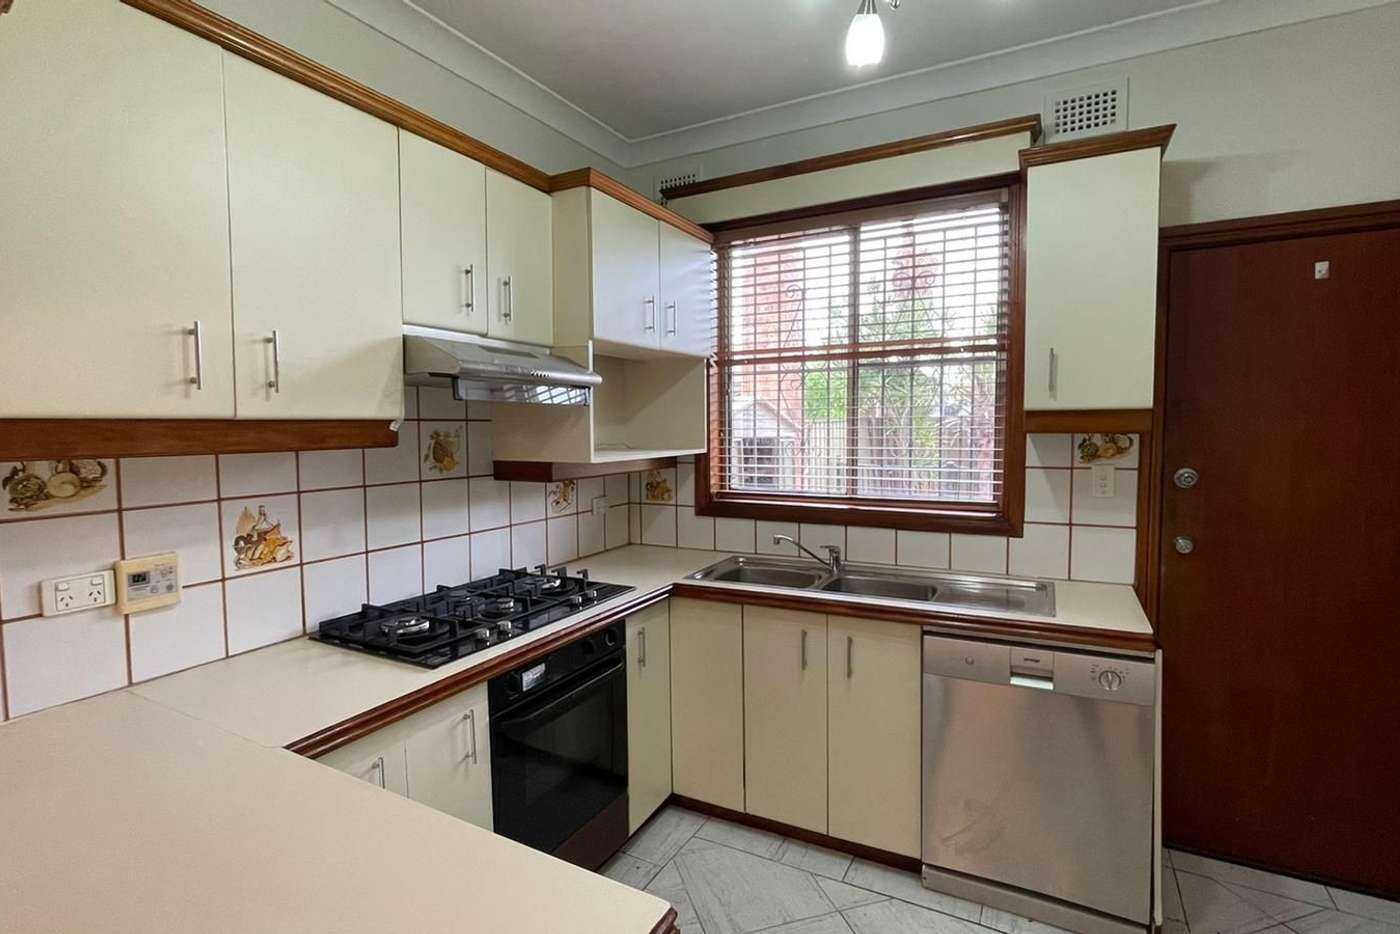 Seventh view of Homely house listing, 16 Wells Street, Granville NSW 2142